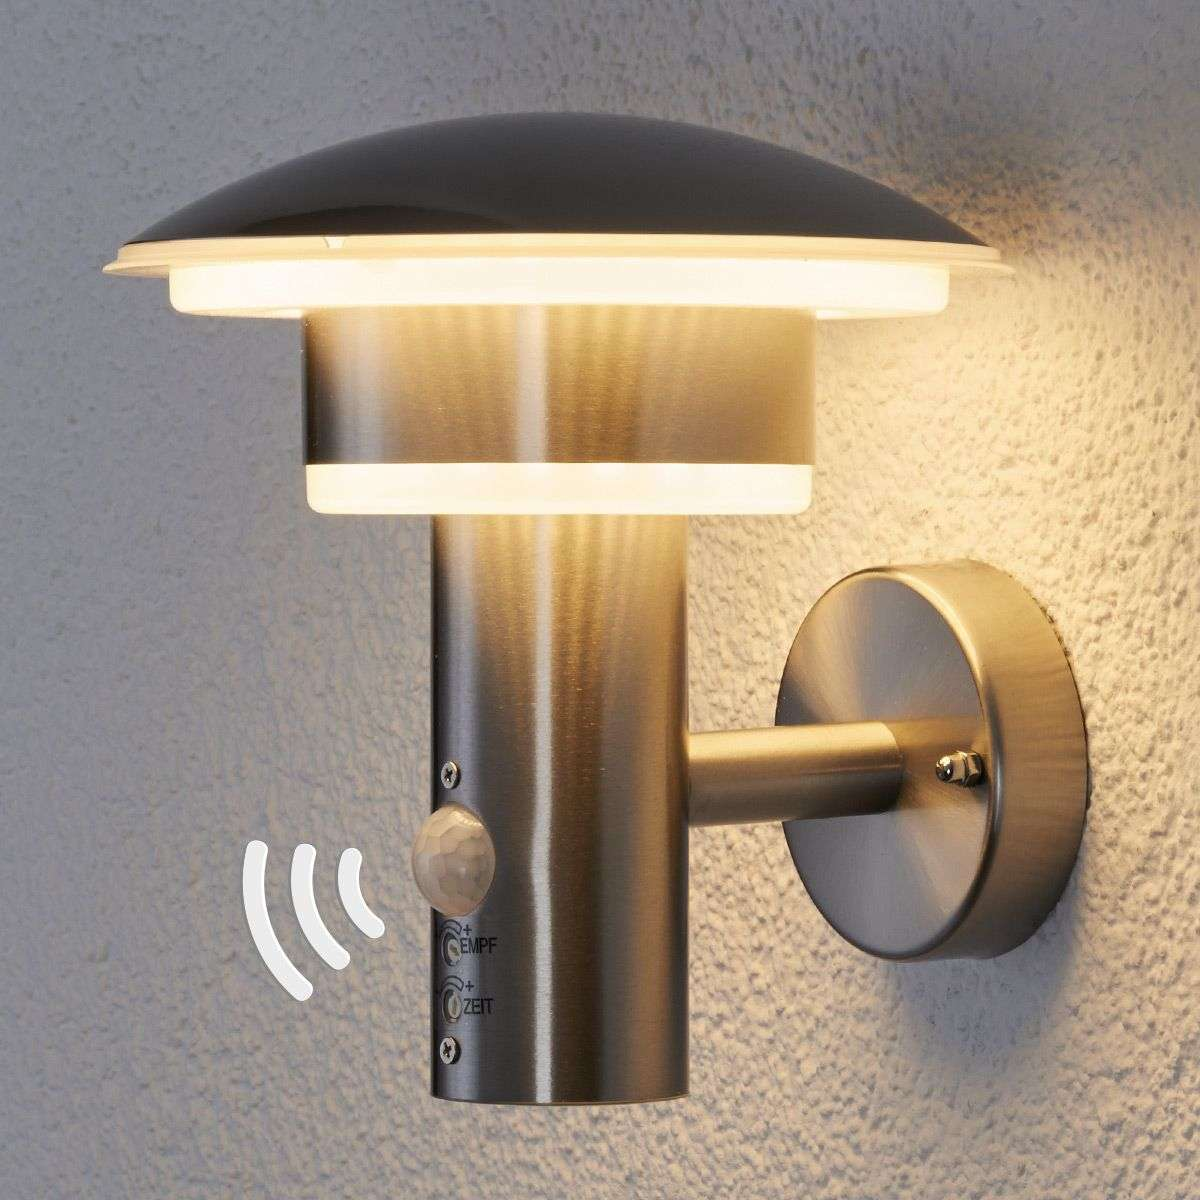 Pir outdoor wall light lillie with leds lights pir outdoor wall light lillie with leds aloadofball Choice Image